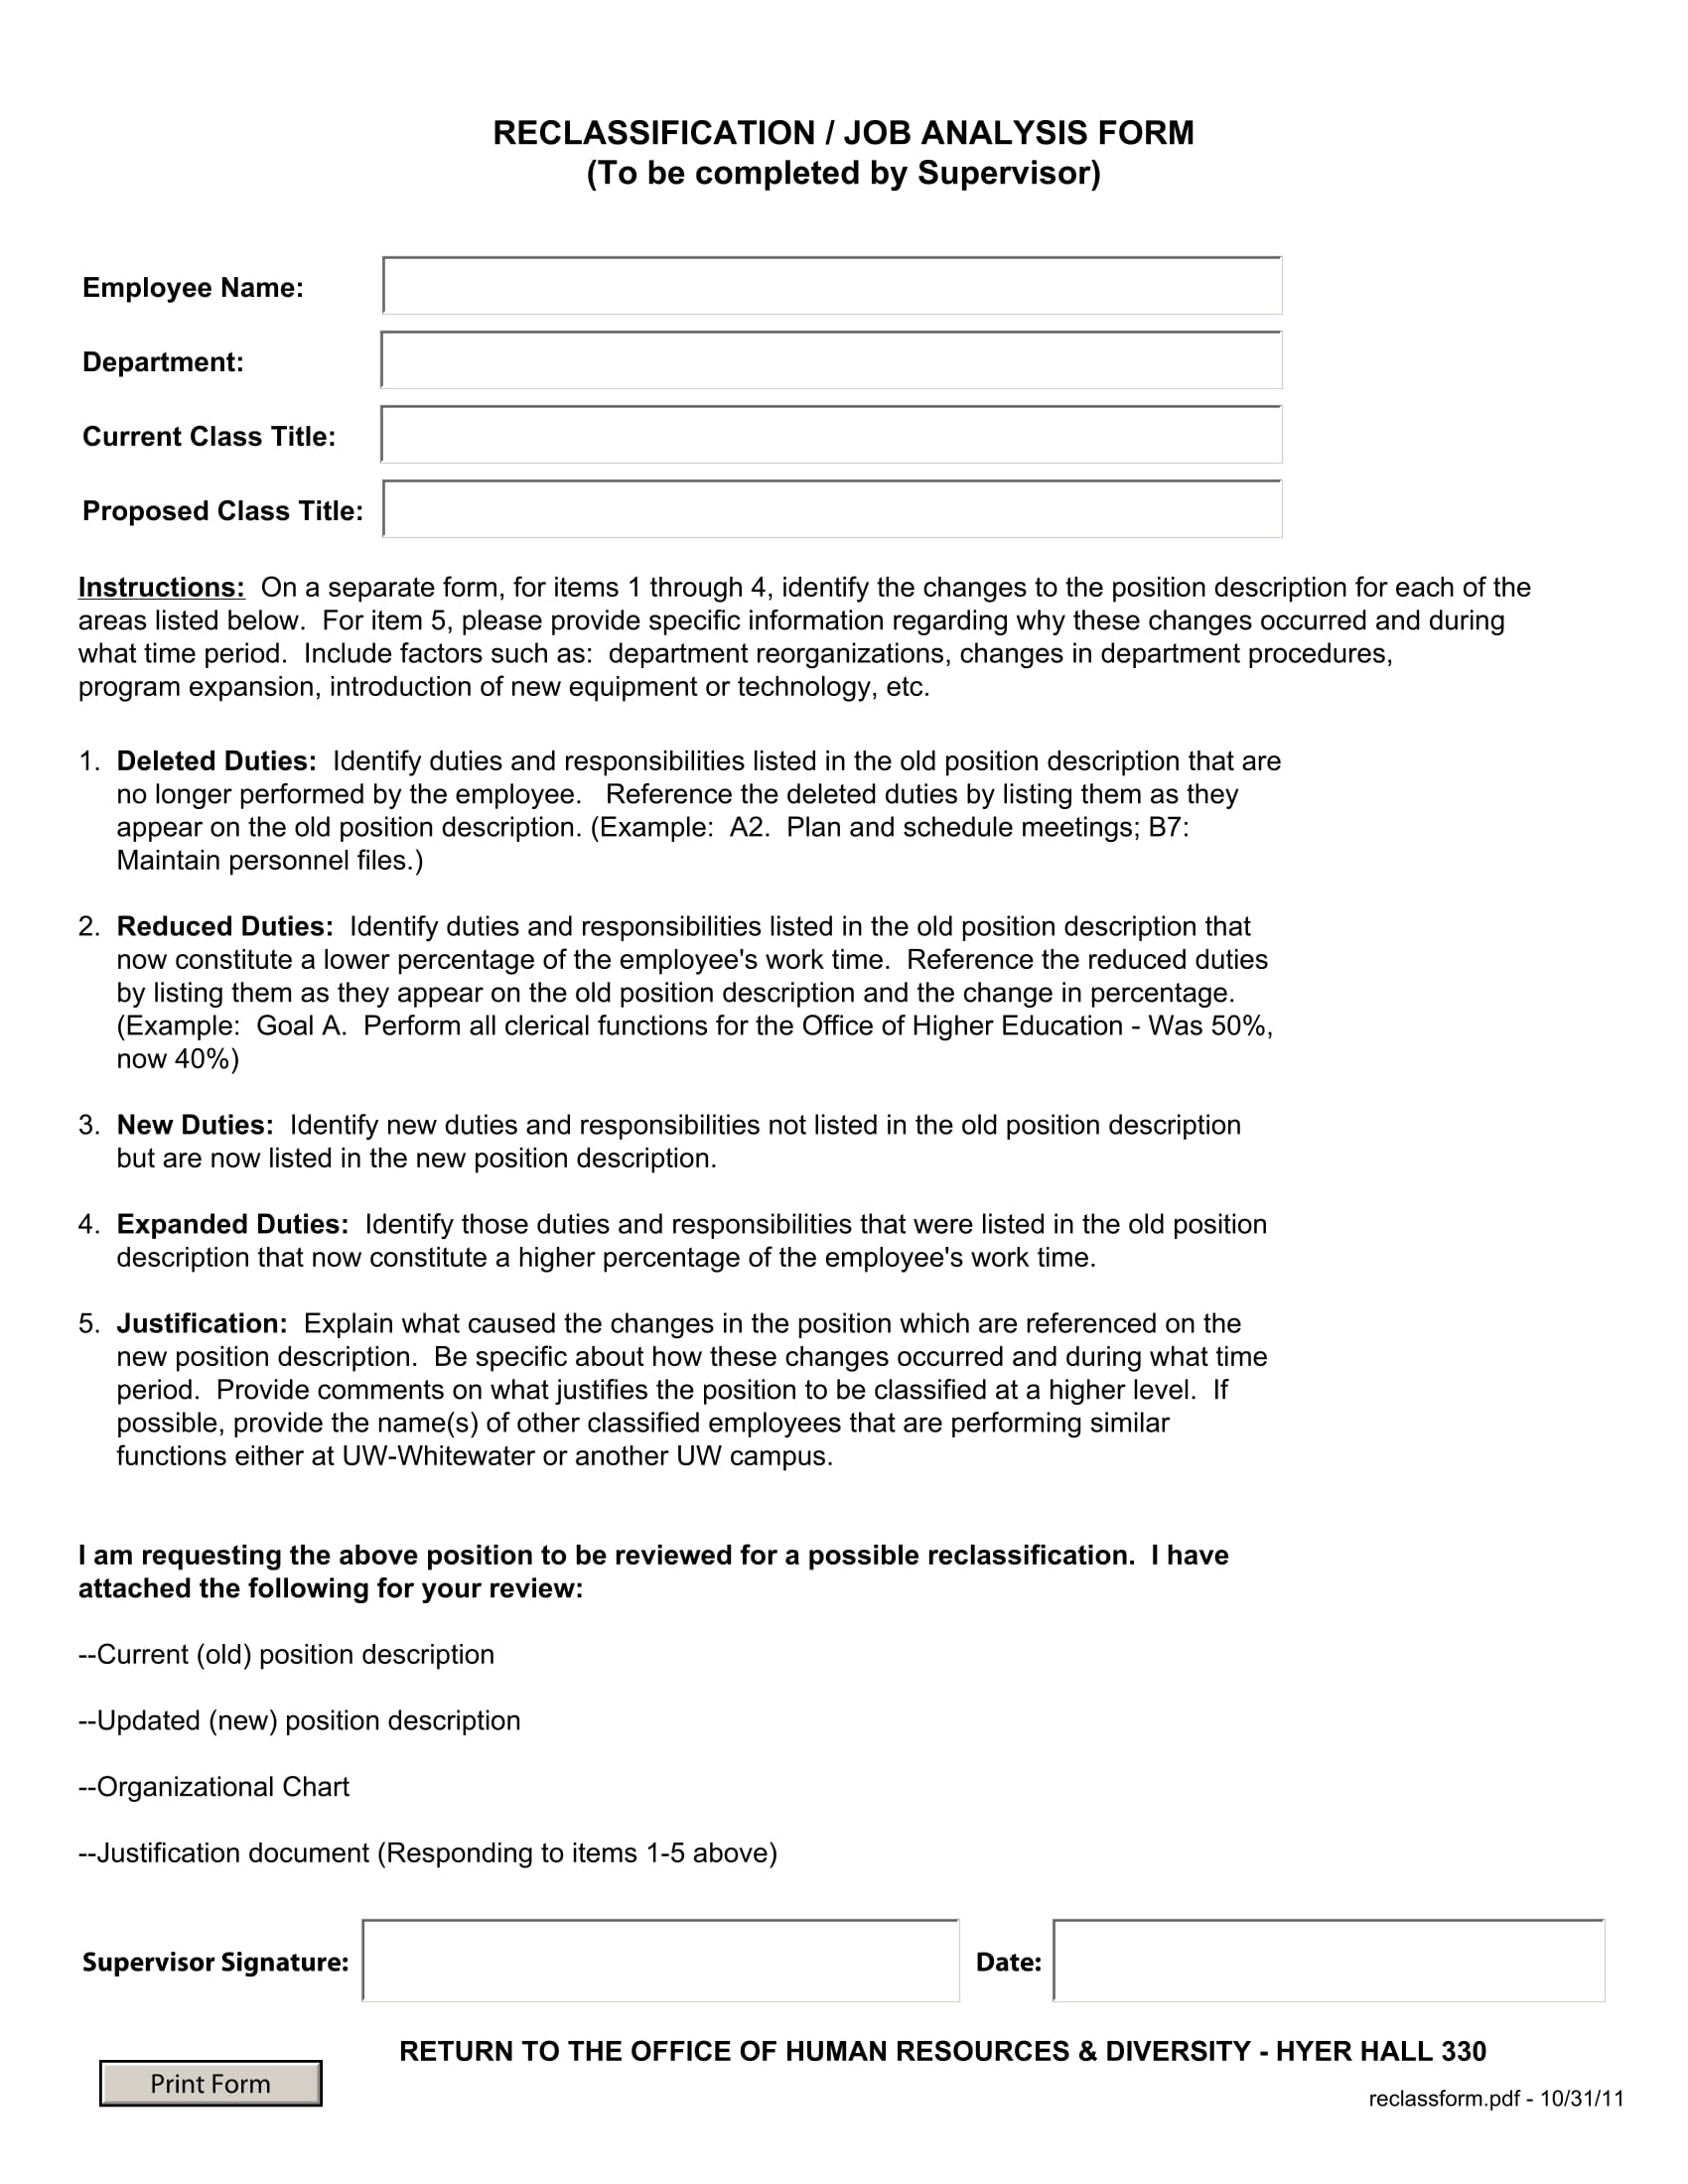 reclassification job analysis form 1